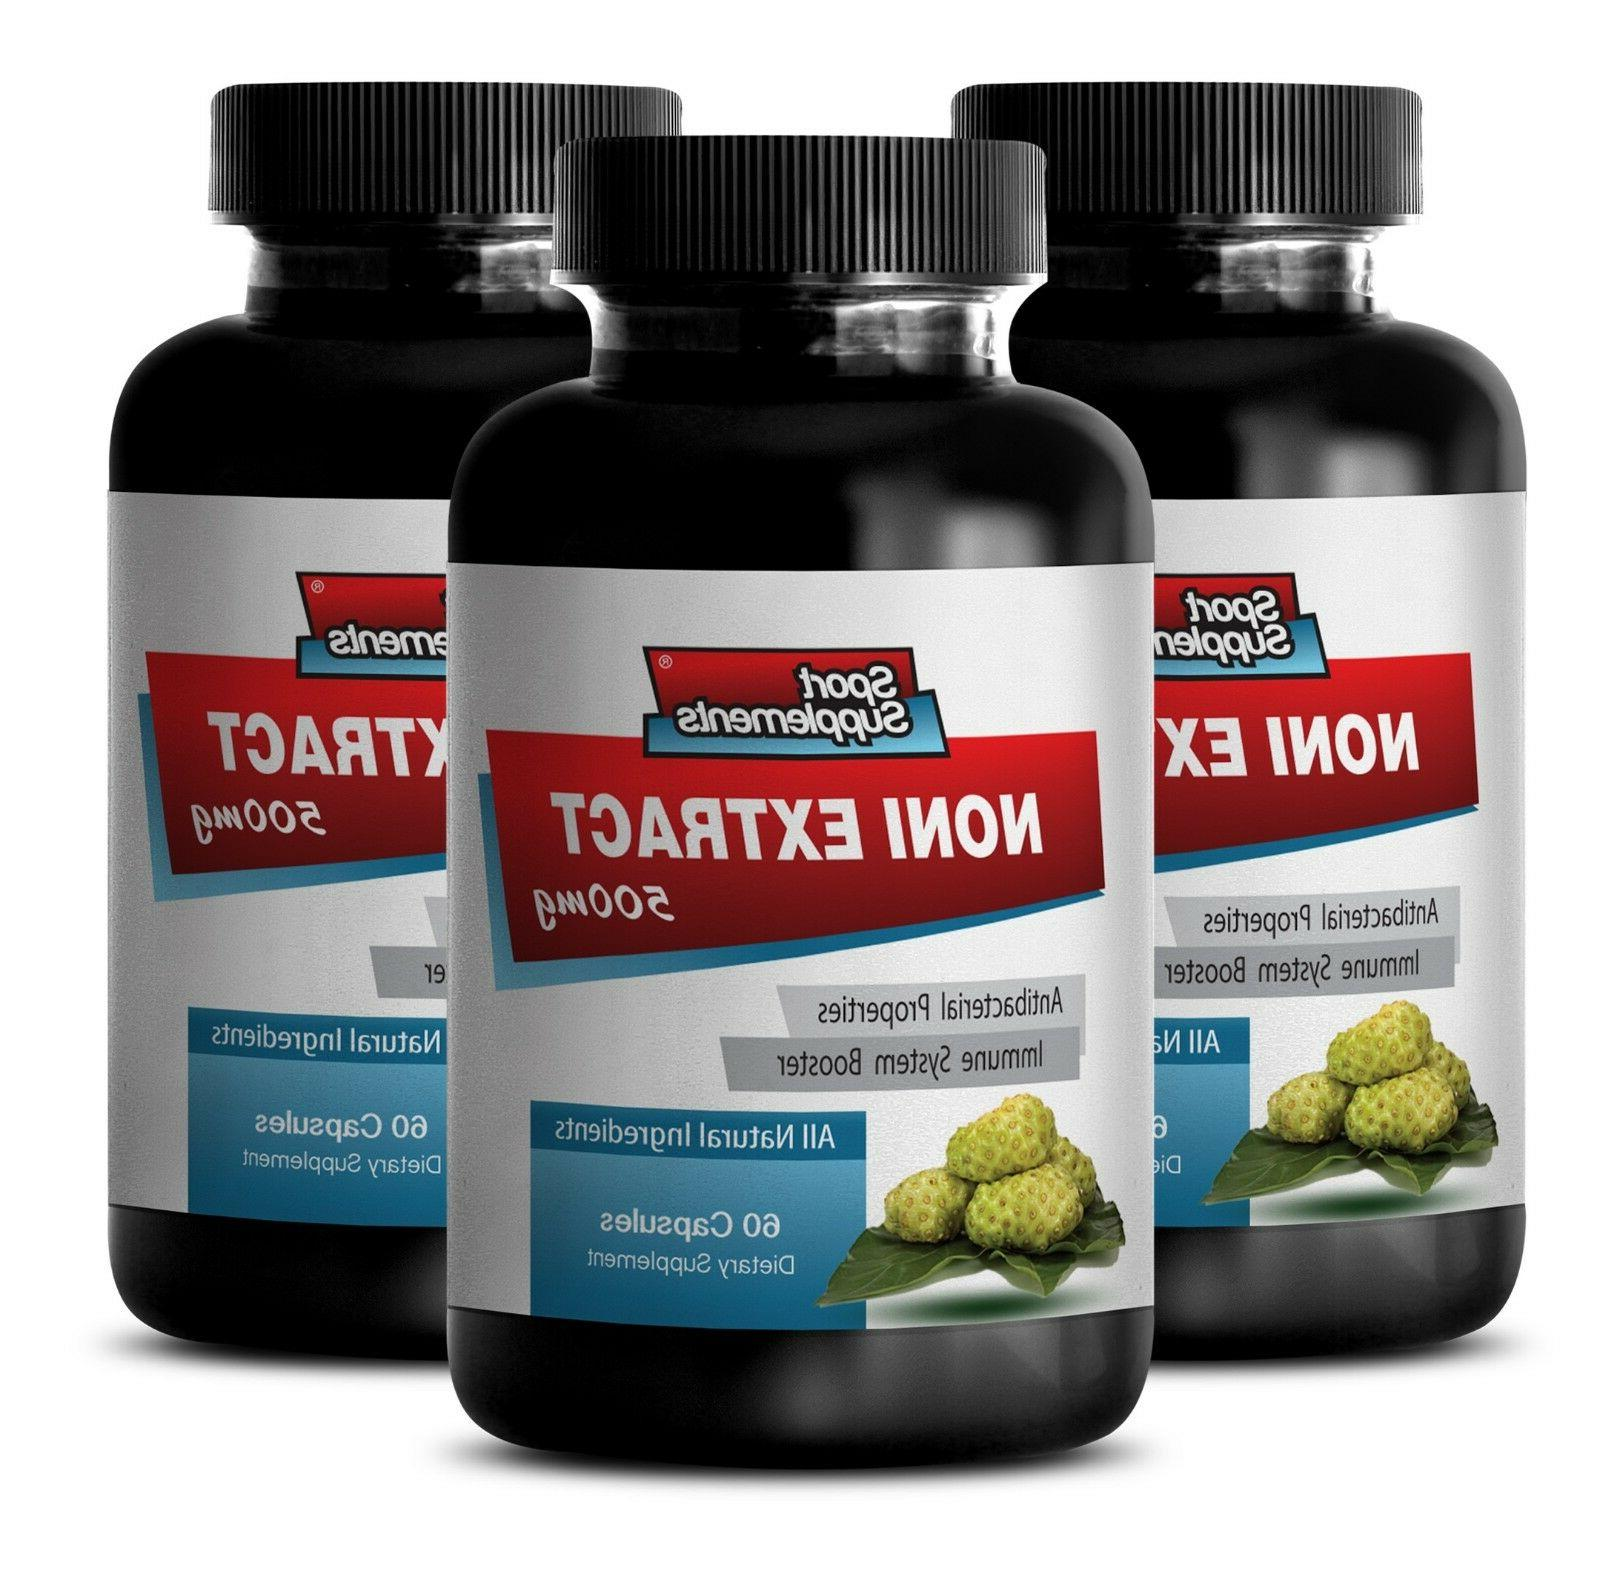 weight loss supp - NONI EXTRACT 500mg - 3 Bottles - brain me